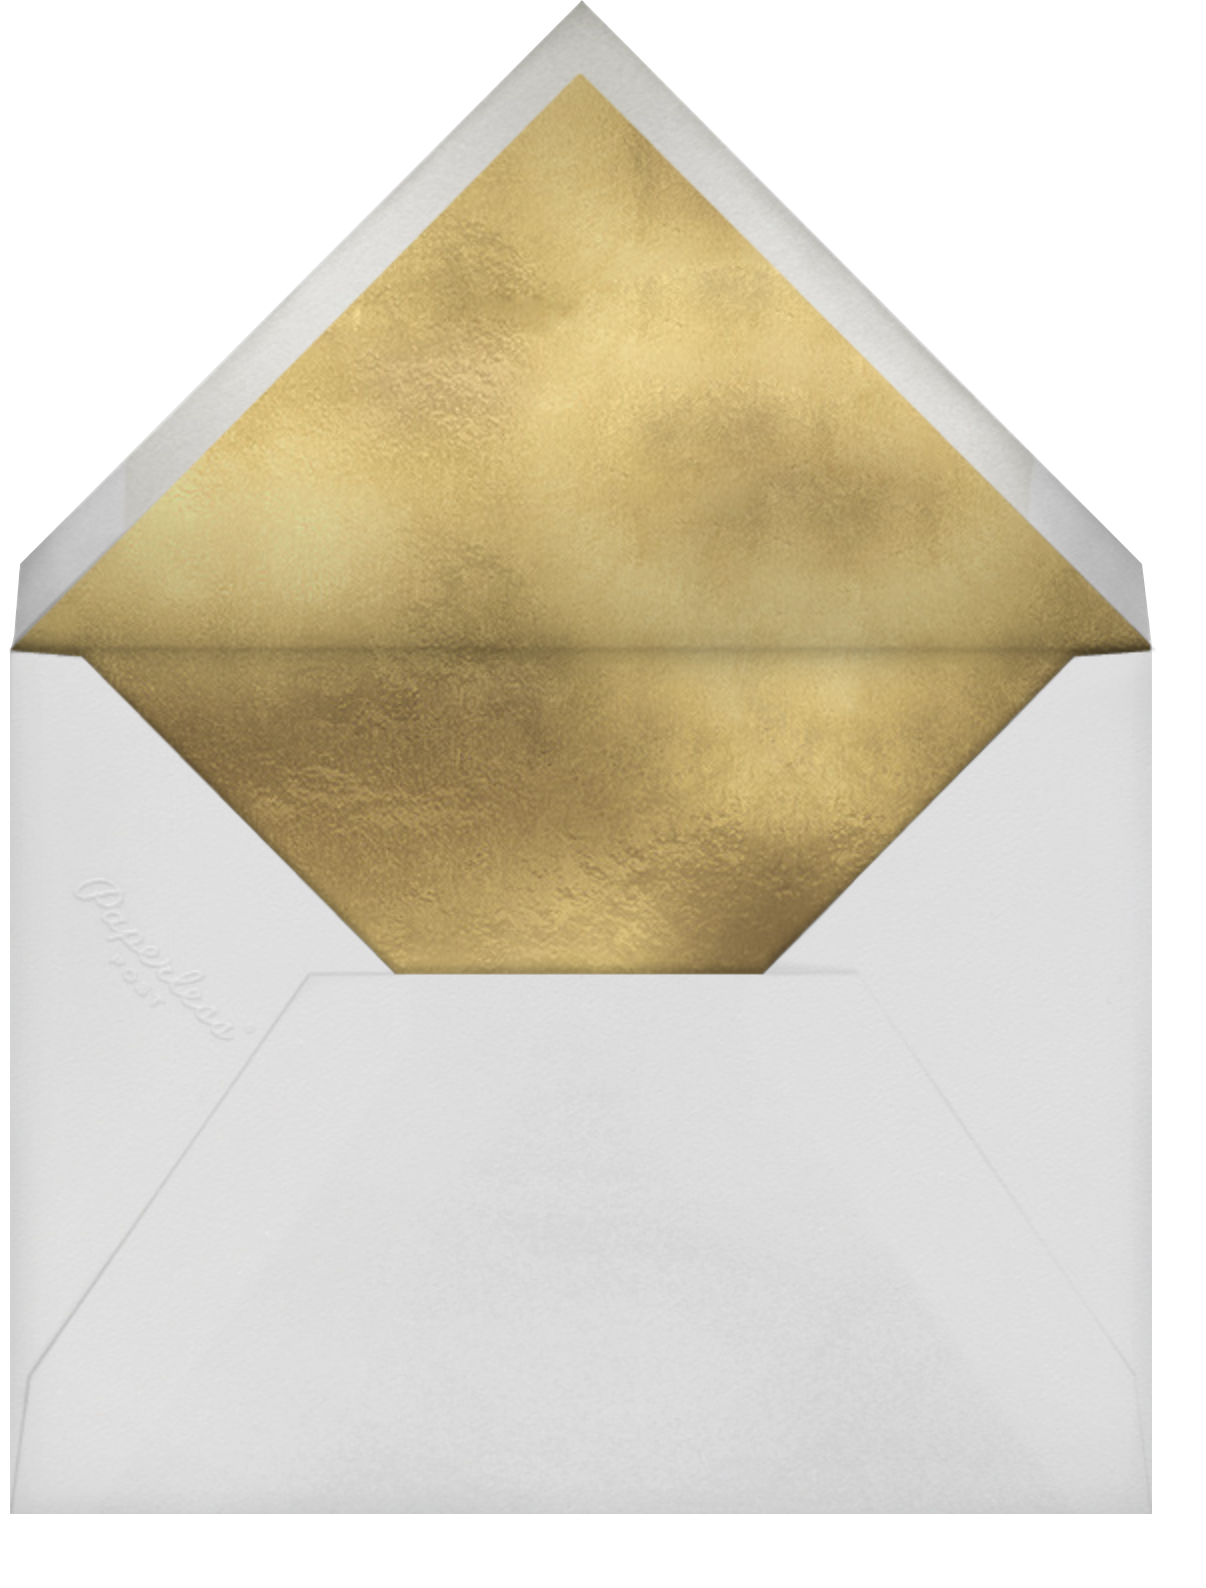 Wild Rose New Year - Rifle Paper Co. - New Year - envelope back